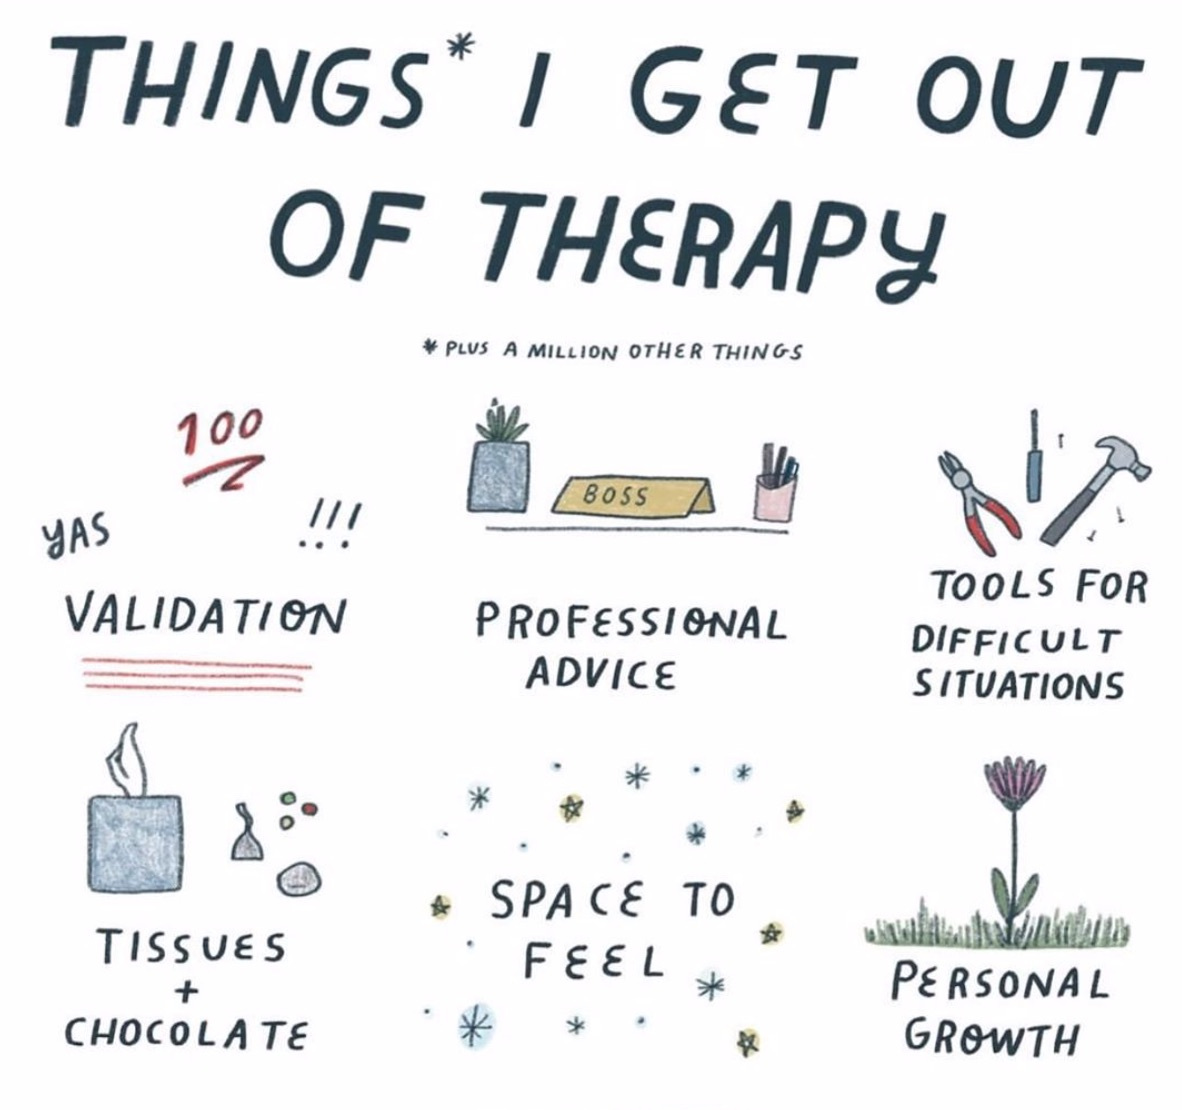 maesk-counseling-therapybenefits.jpg